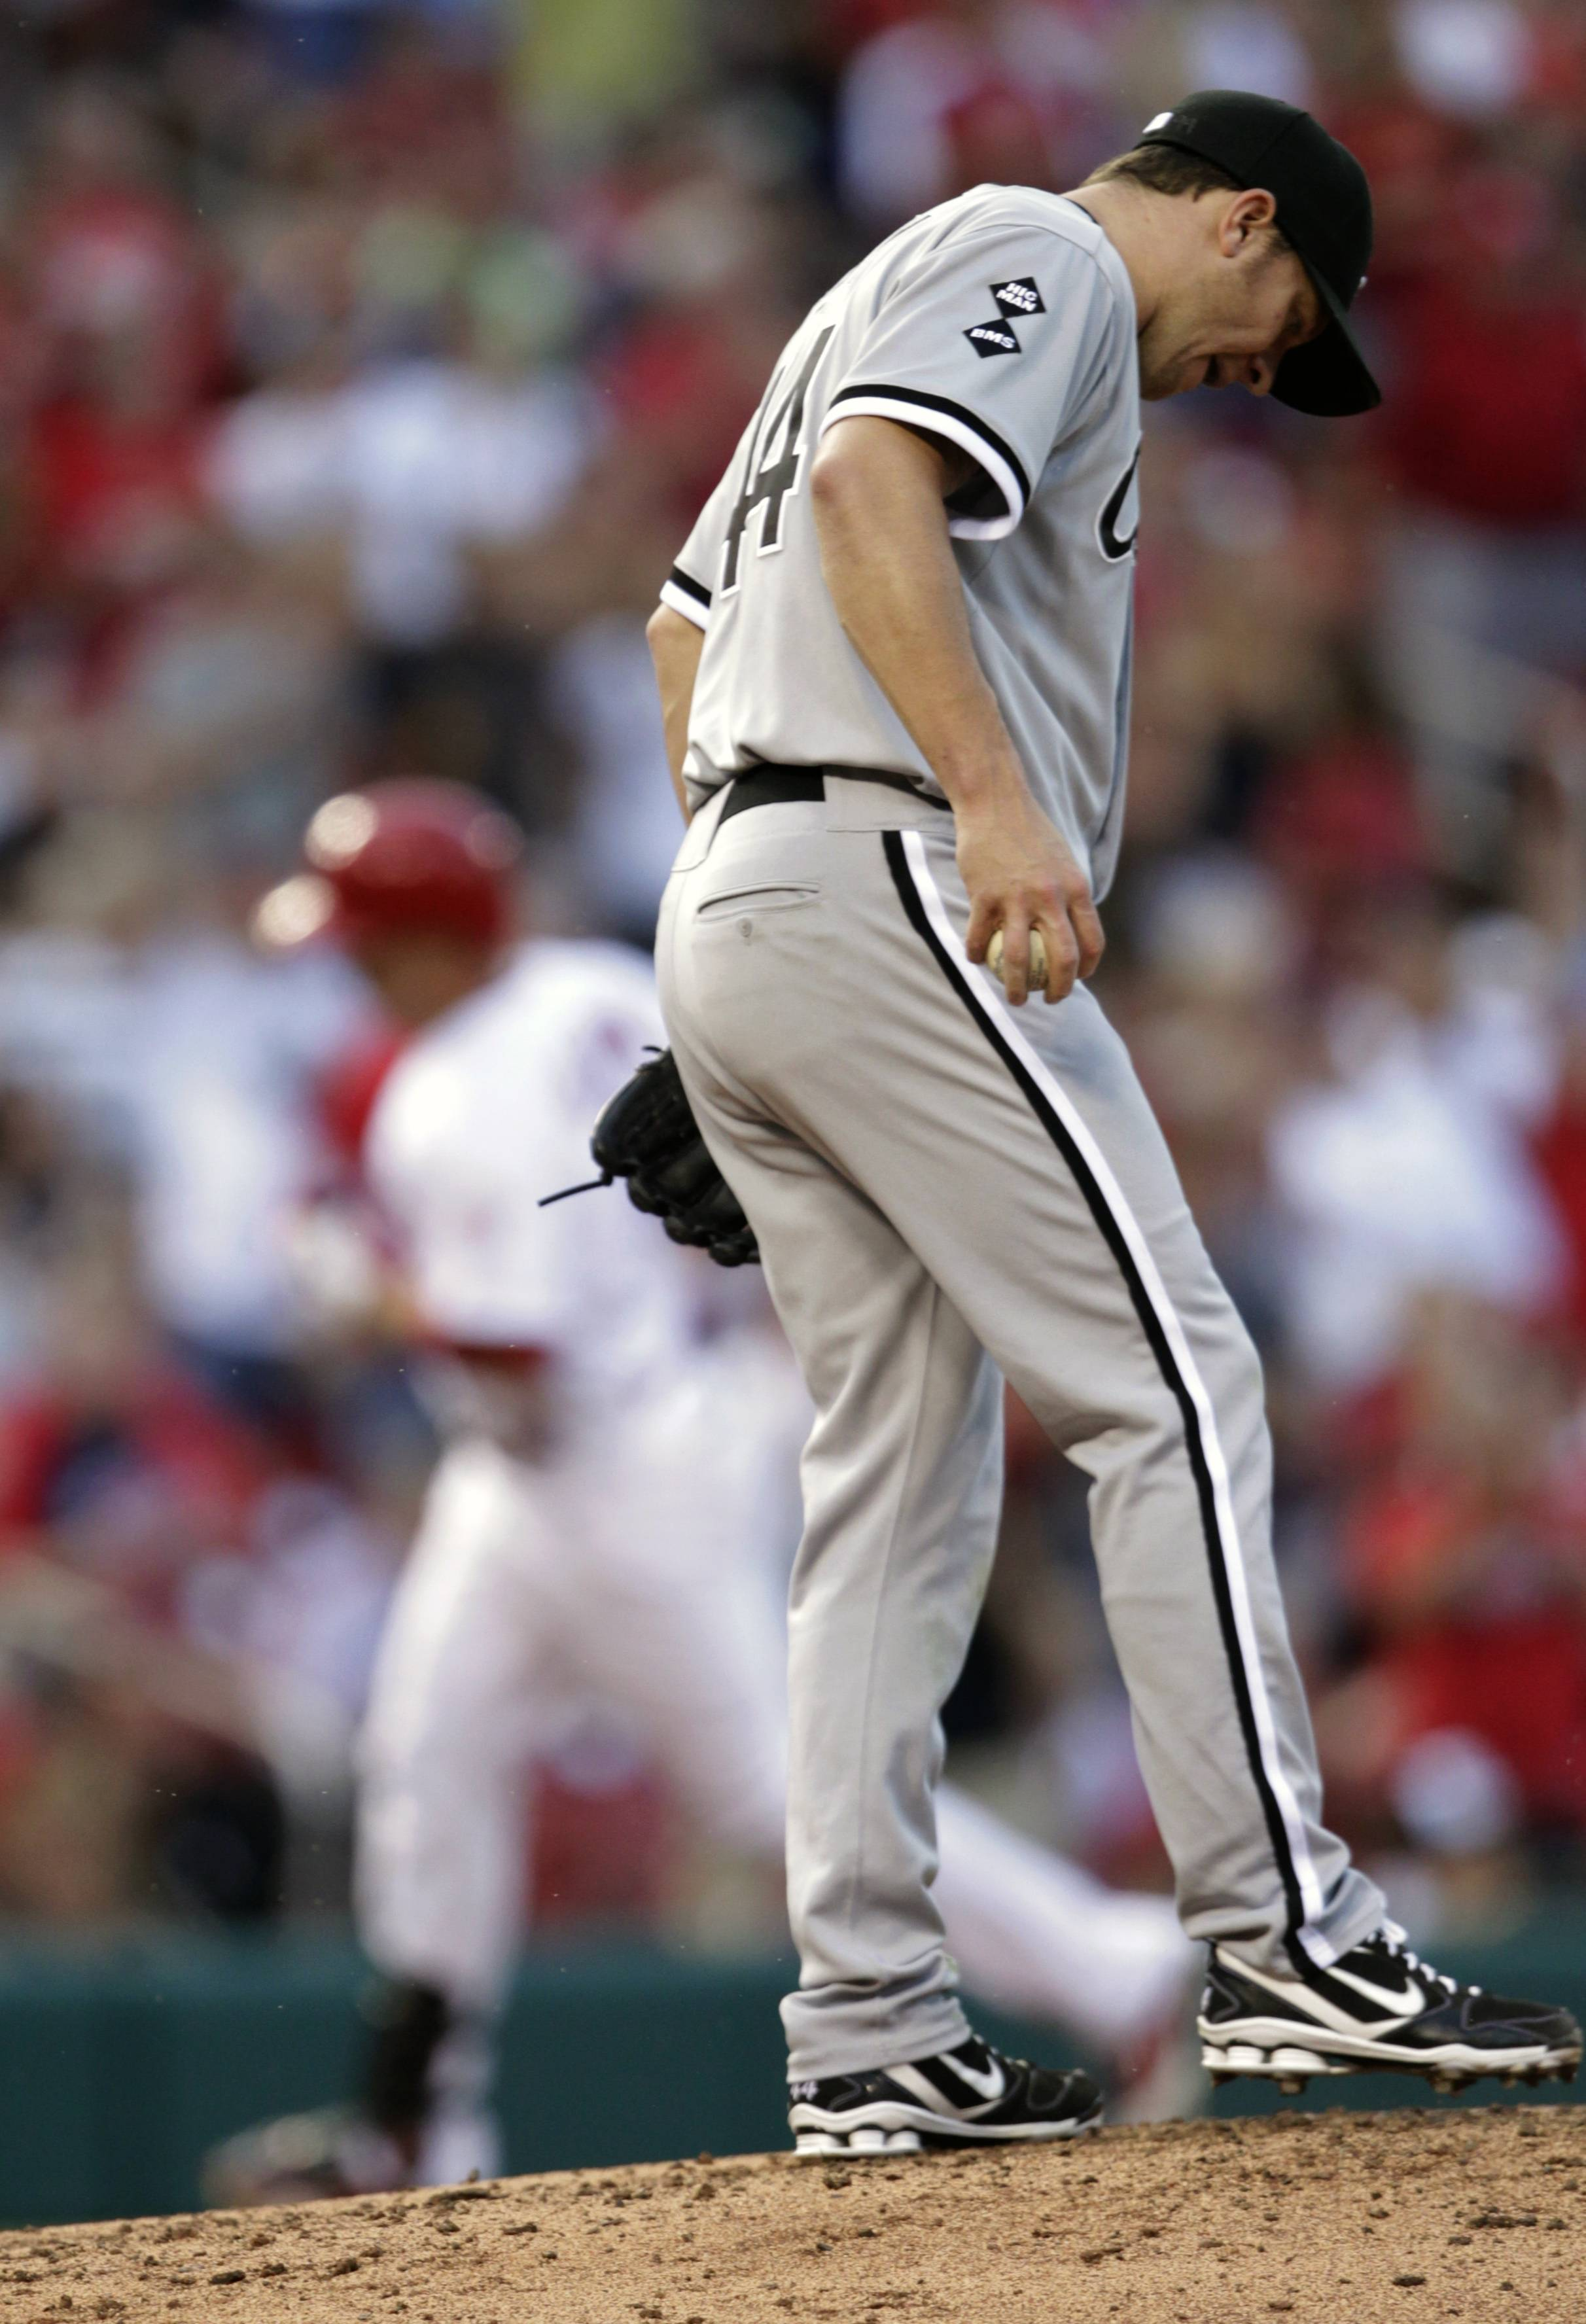 White Sox starting pitcher Jake Peavy kicks at the mound Wednesday while Carlos Beltran circles the bases on a solo home run during the third inning in St. Louis.